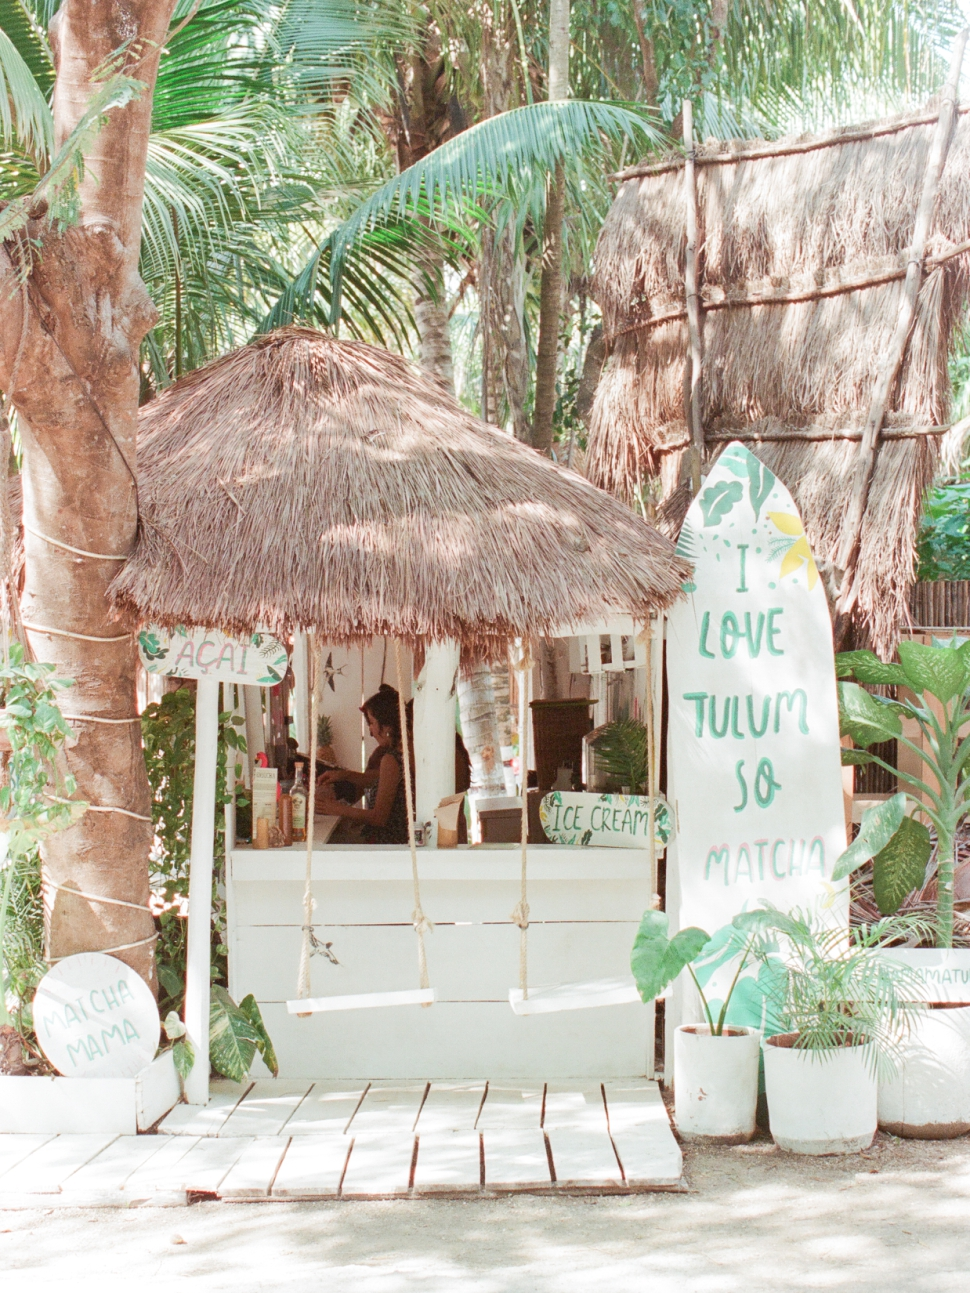 Where-to-Eat-in-Tulum-Mexico_04.jpg